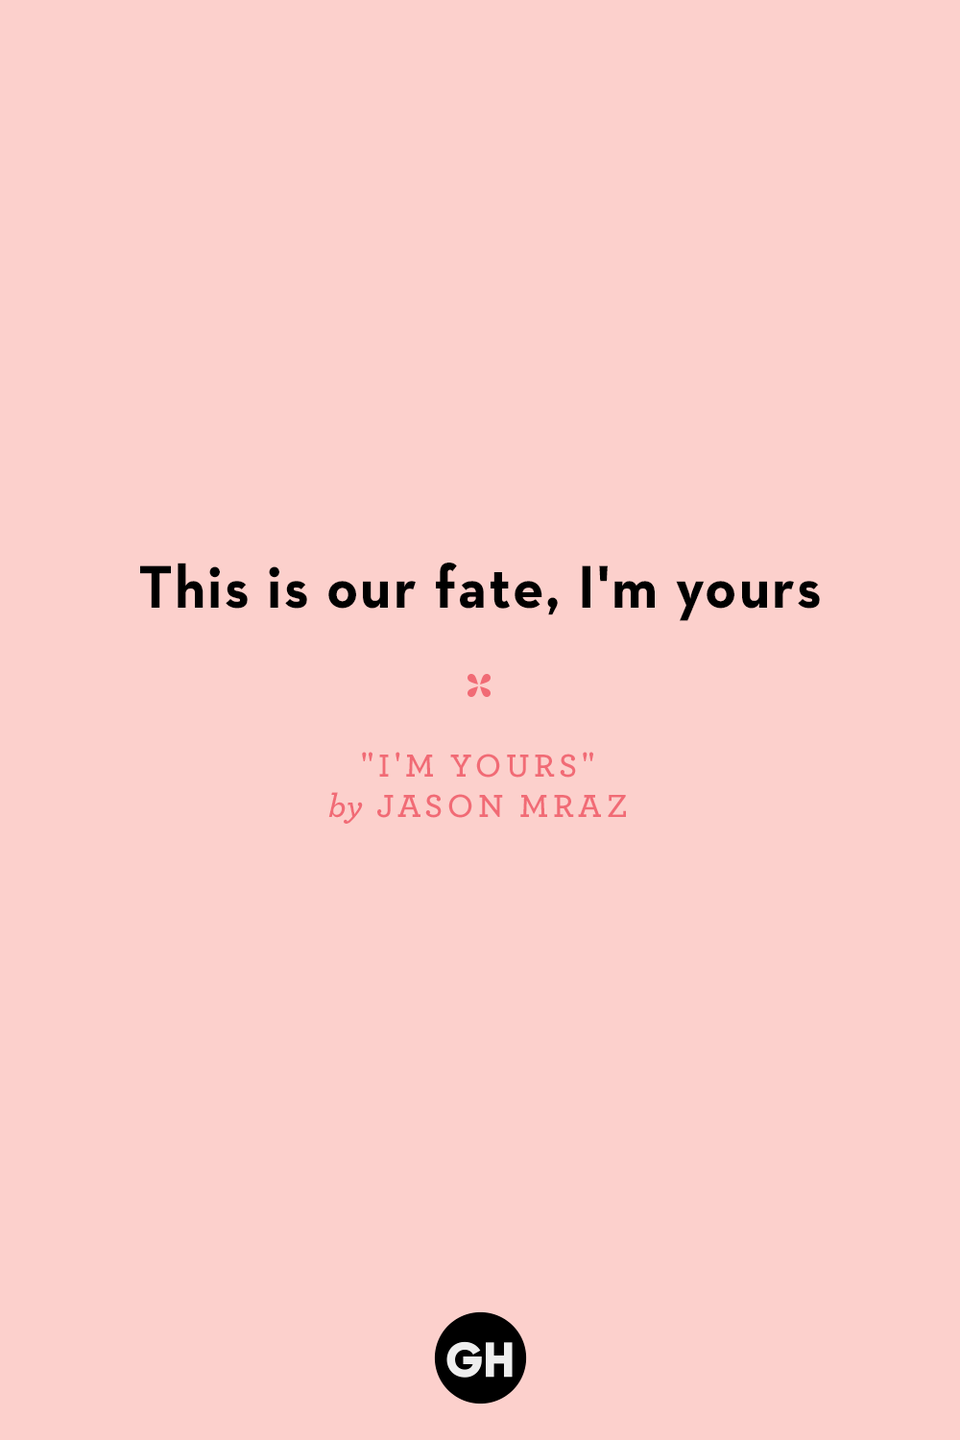 <p>This is our fate, I'm yours<br></p>